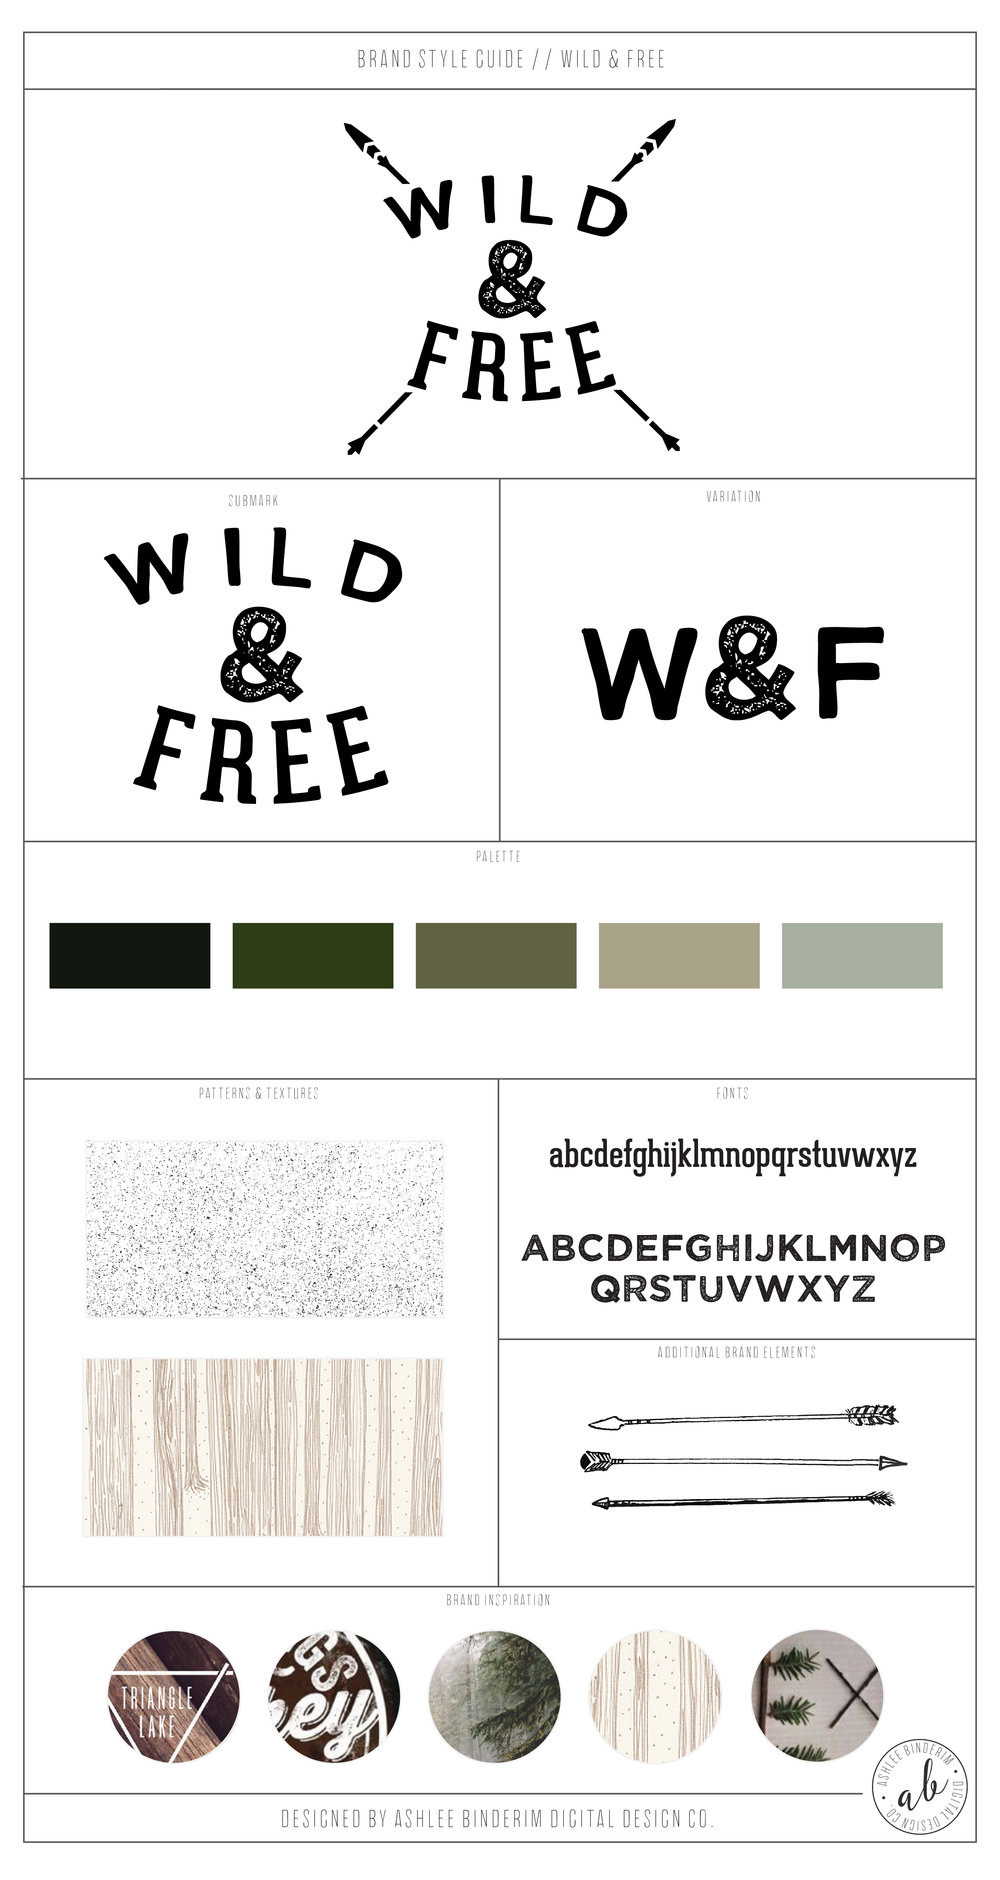 Wild & Free Brand Style Guide